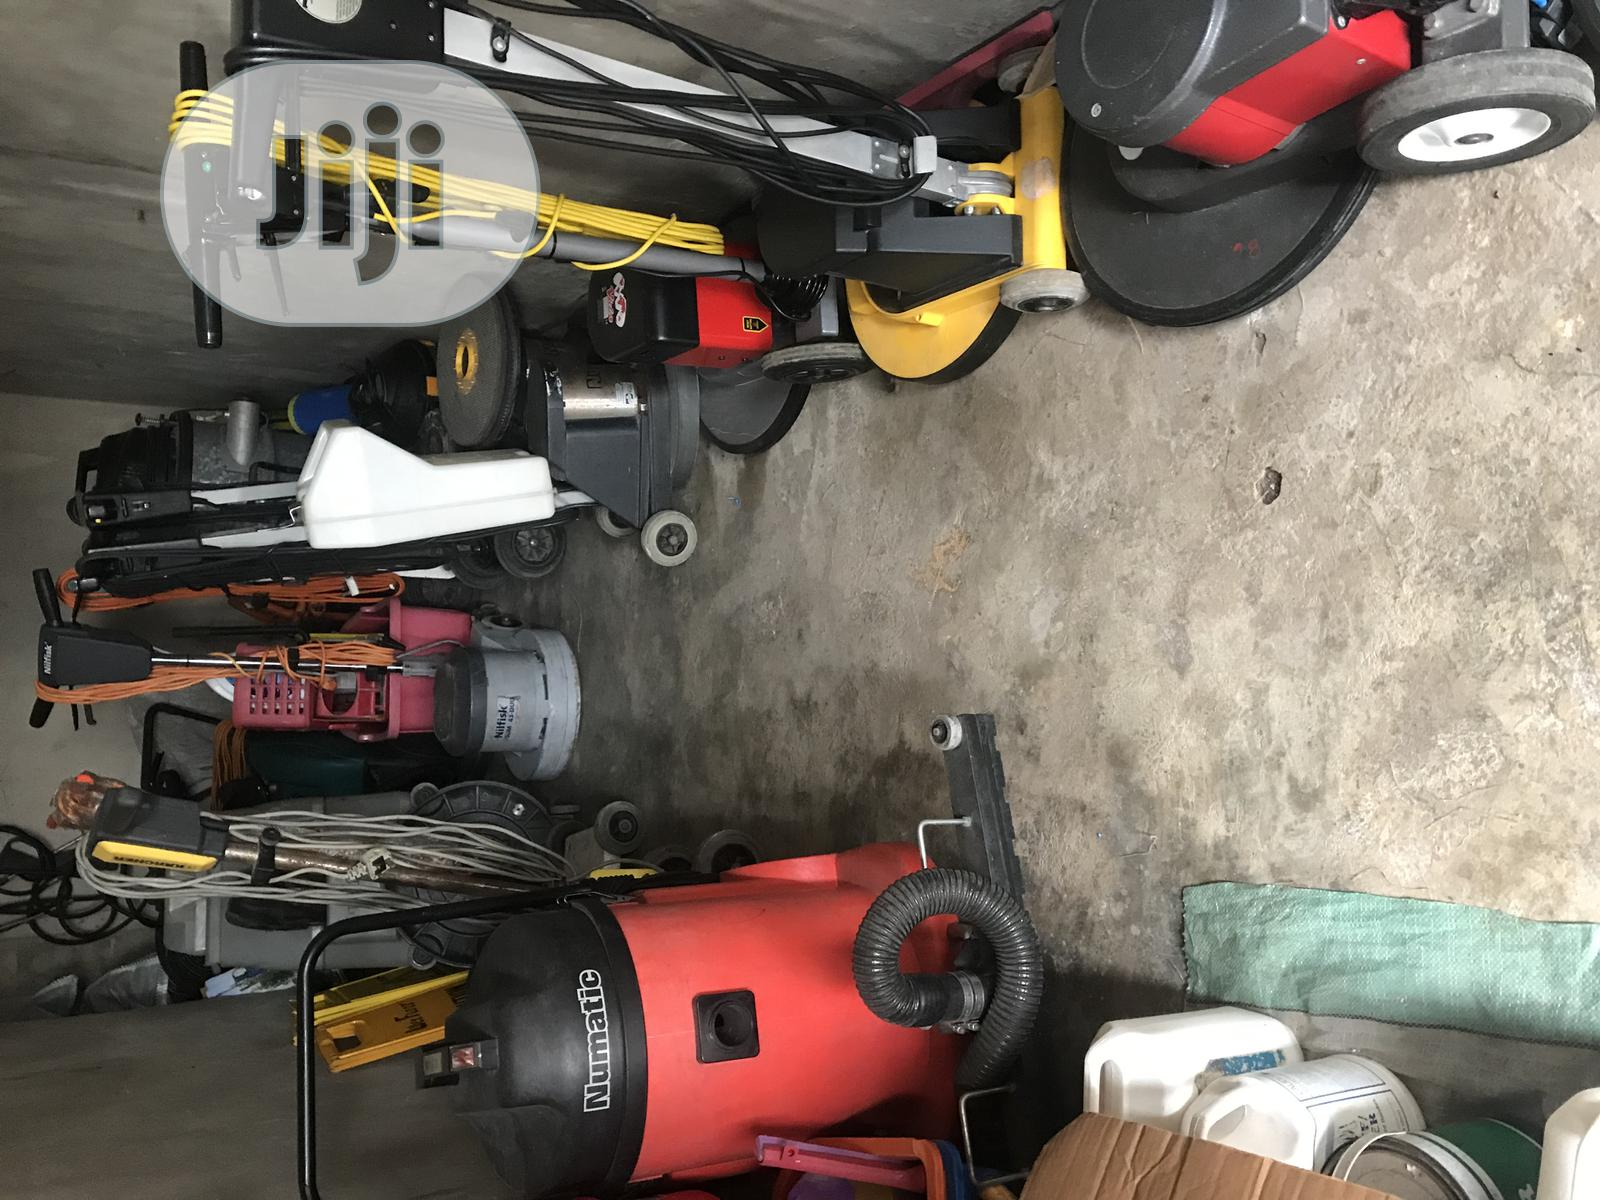 Floor Scrubber Machines for Sale | Home Appliances for sale in Lagos State, Nigeria